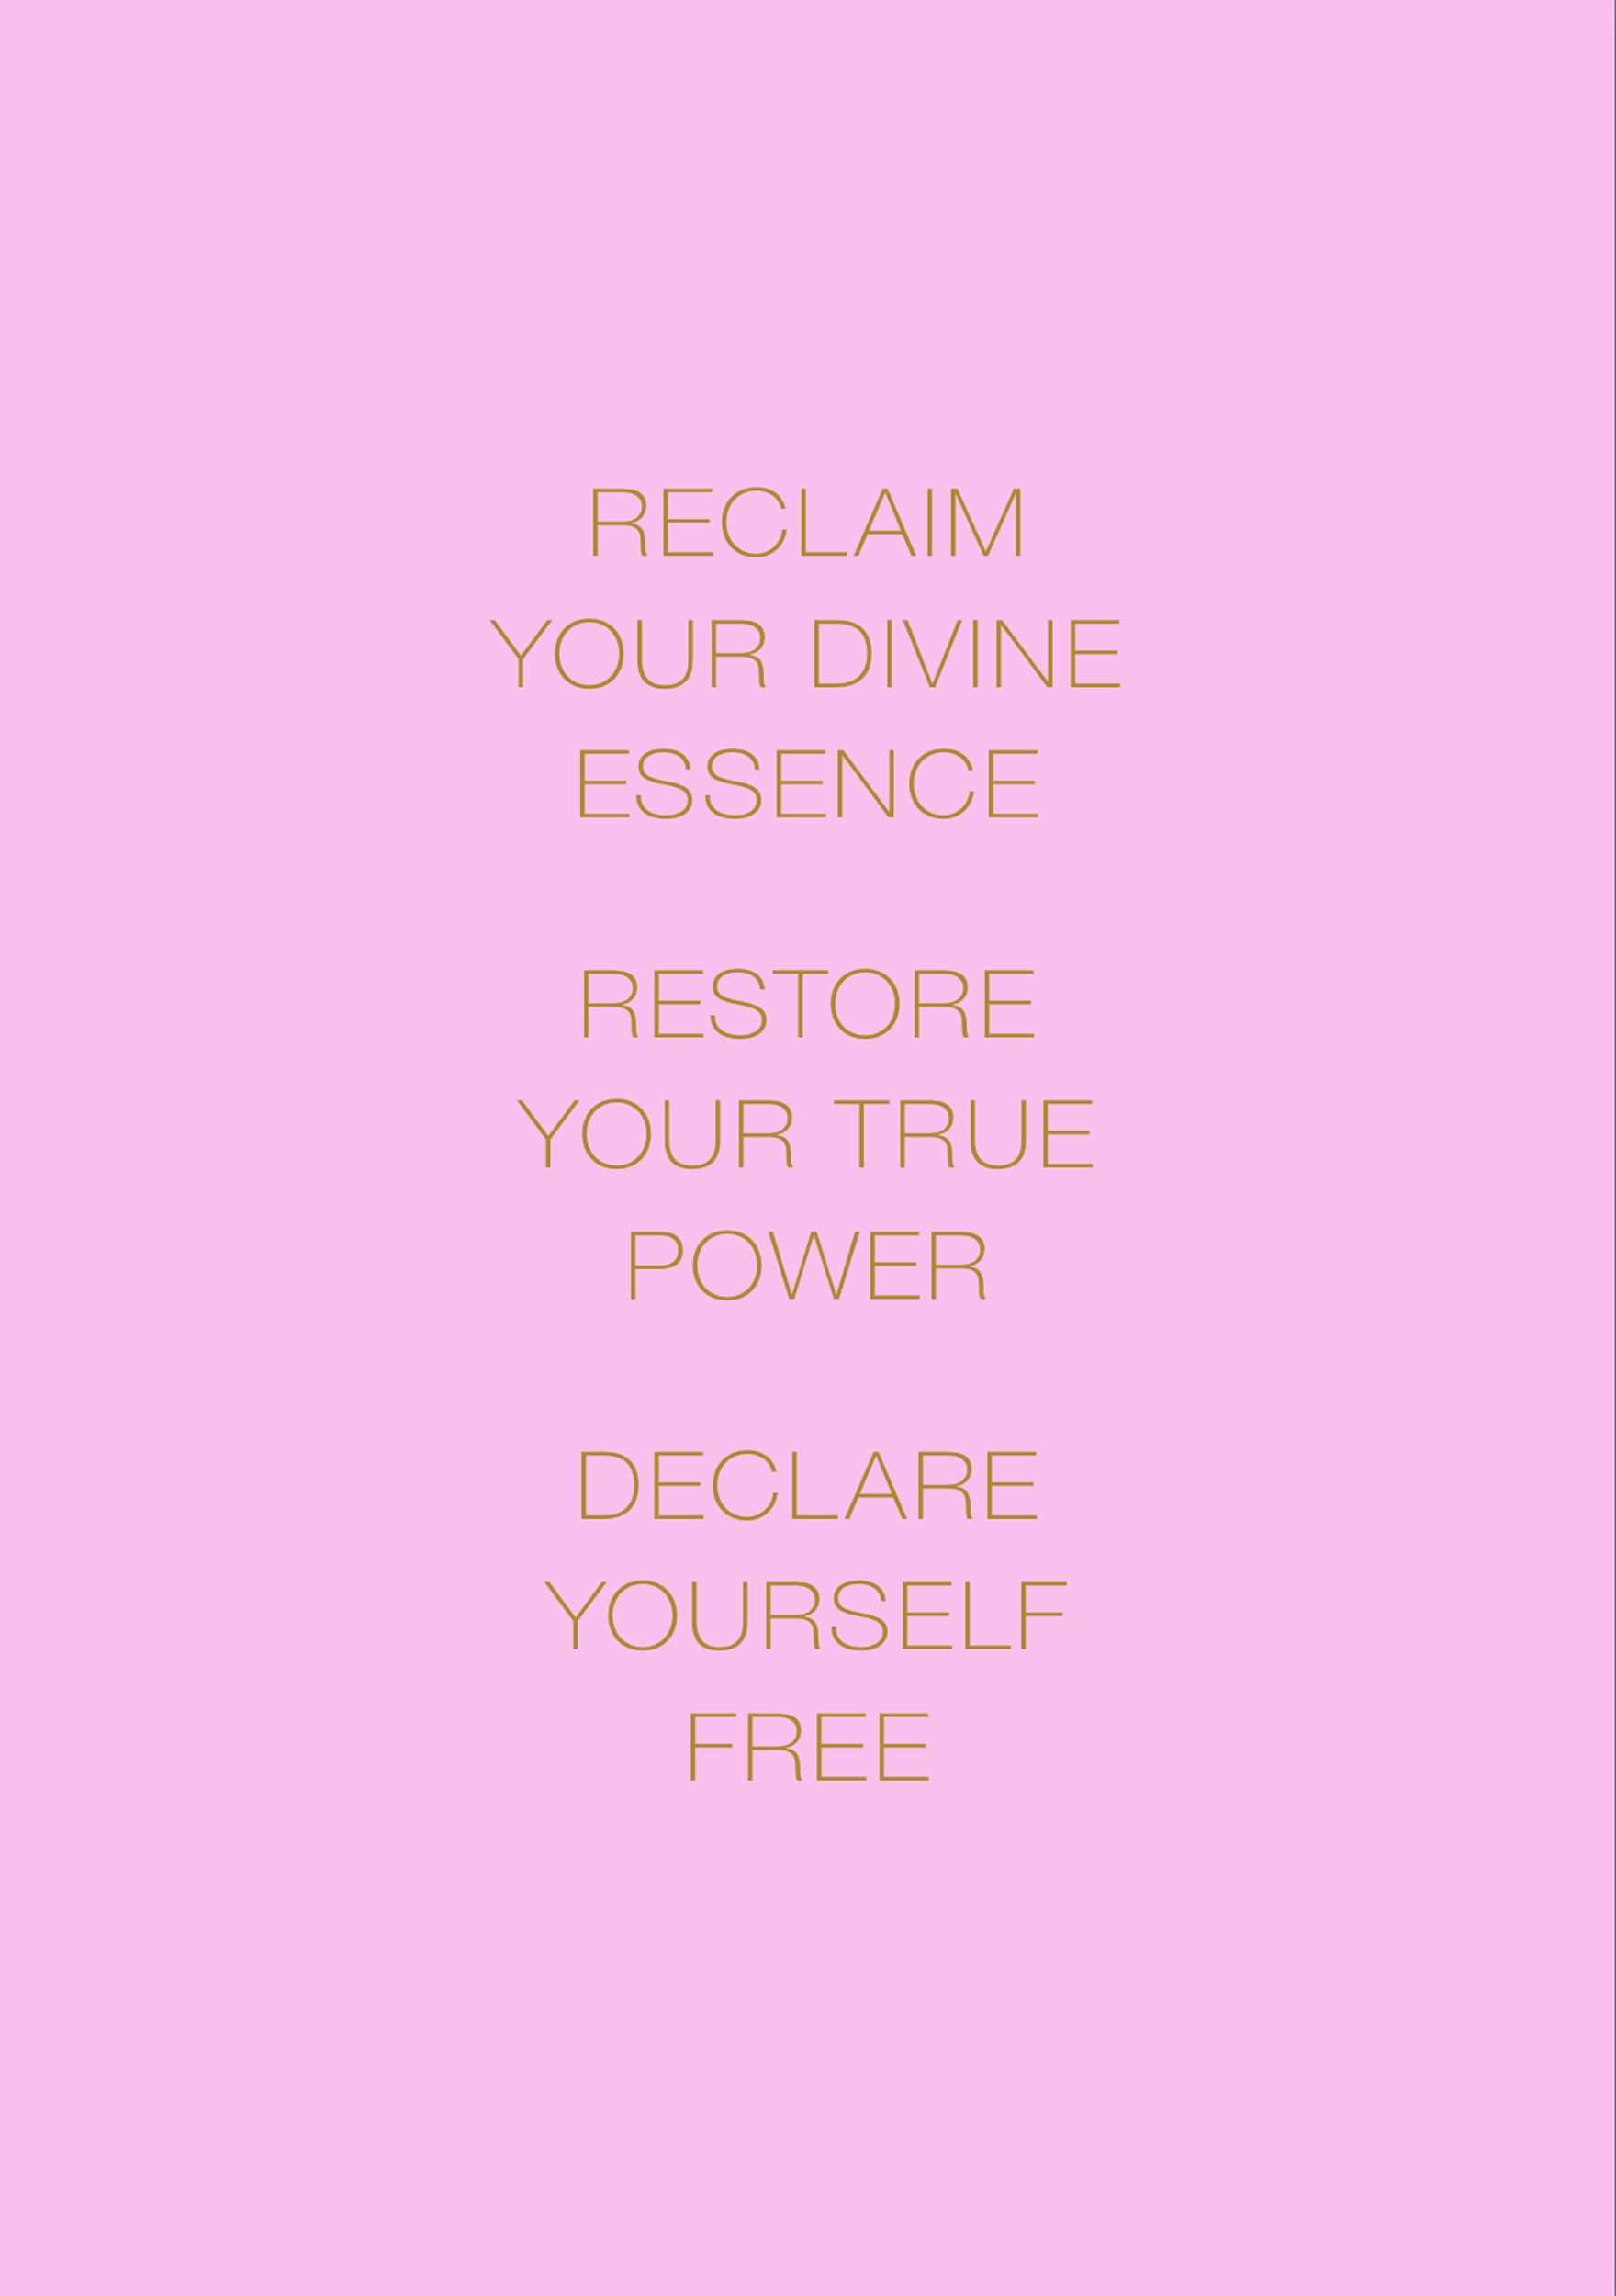 Liberation Mantra: Reclaim Your Divine Essence,Restore Your True Power,Declare Yourself Free